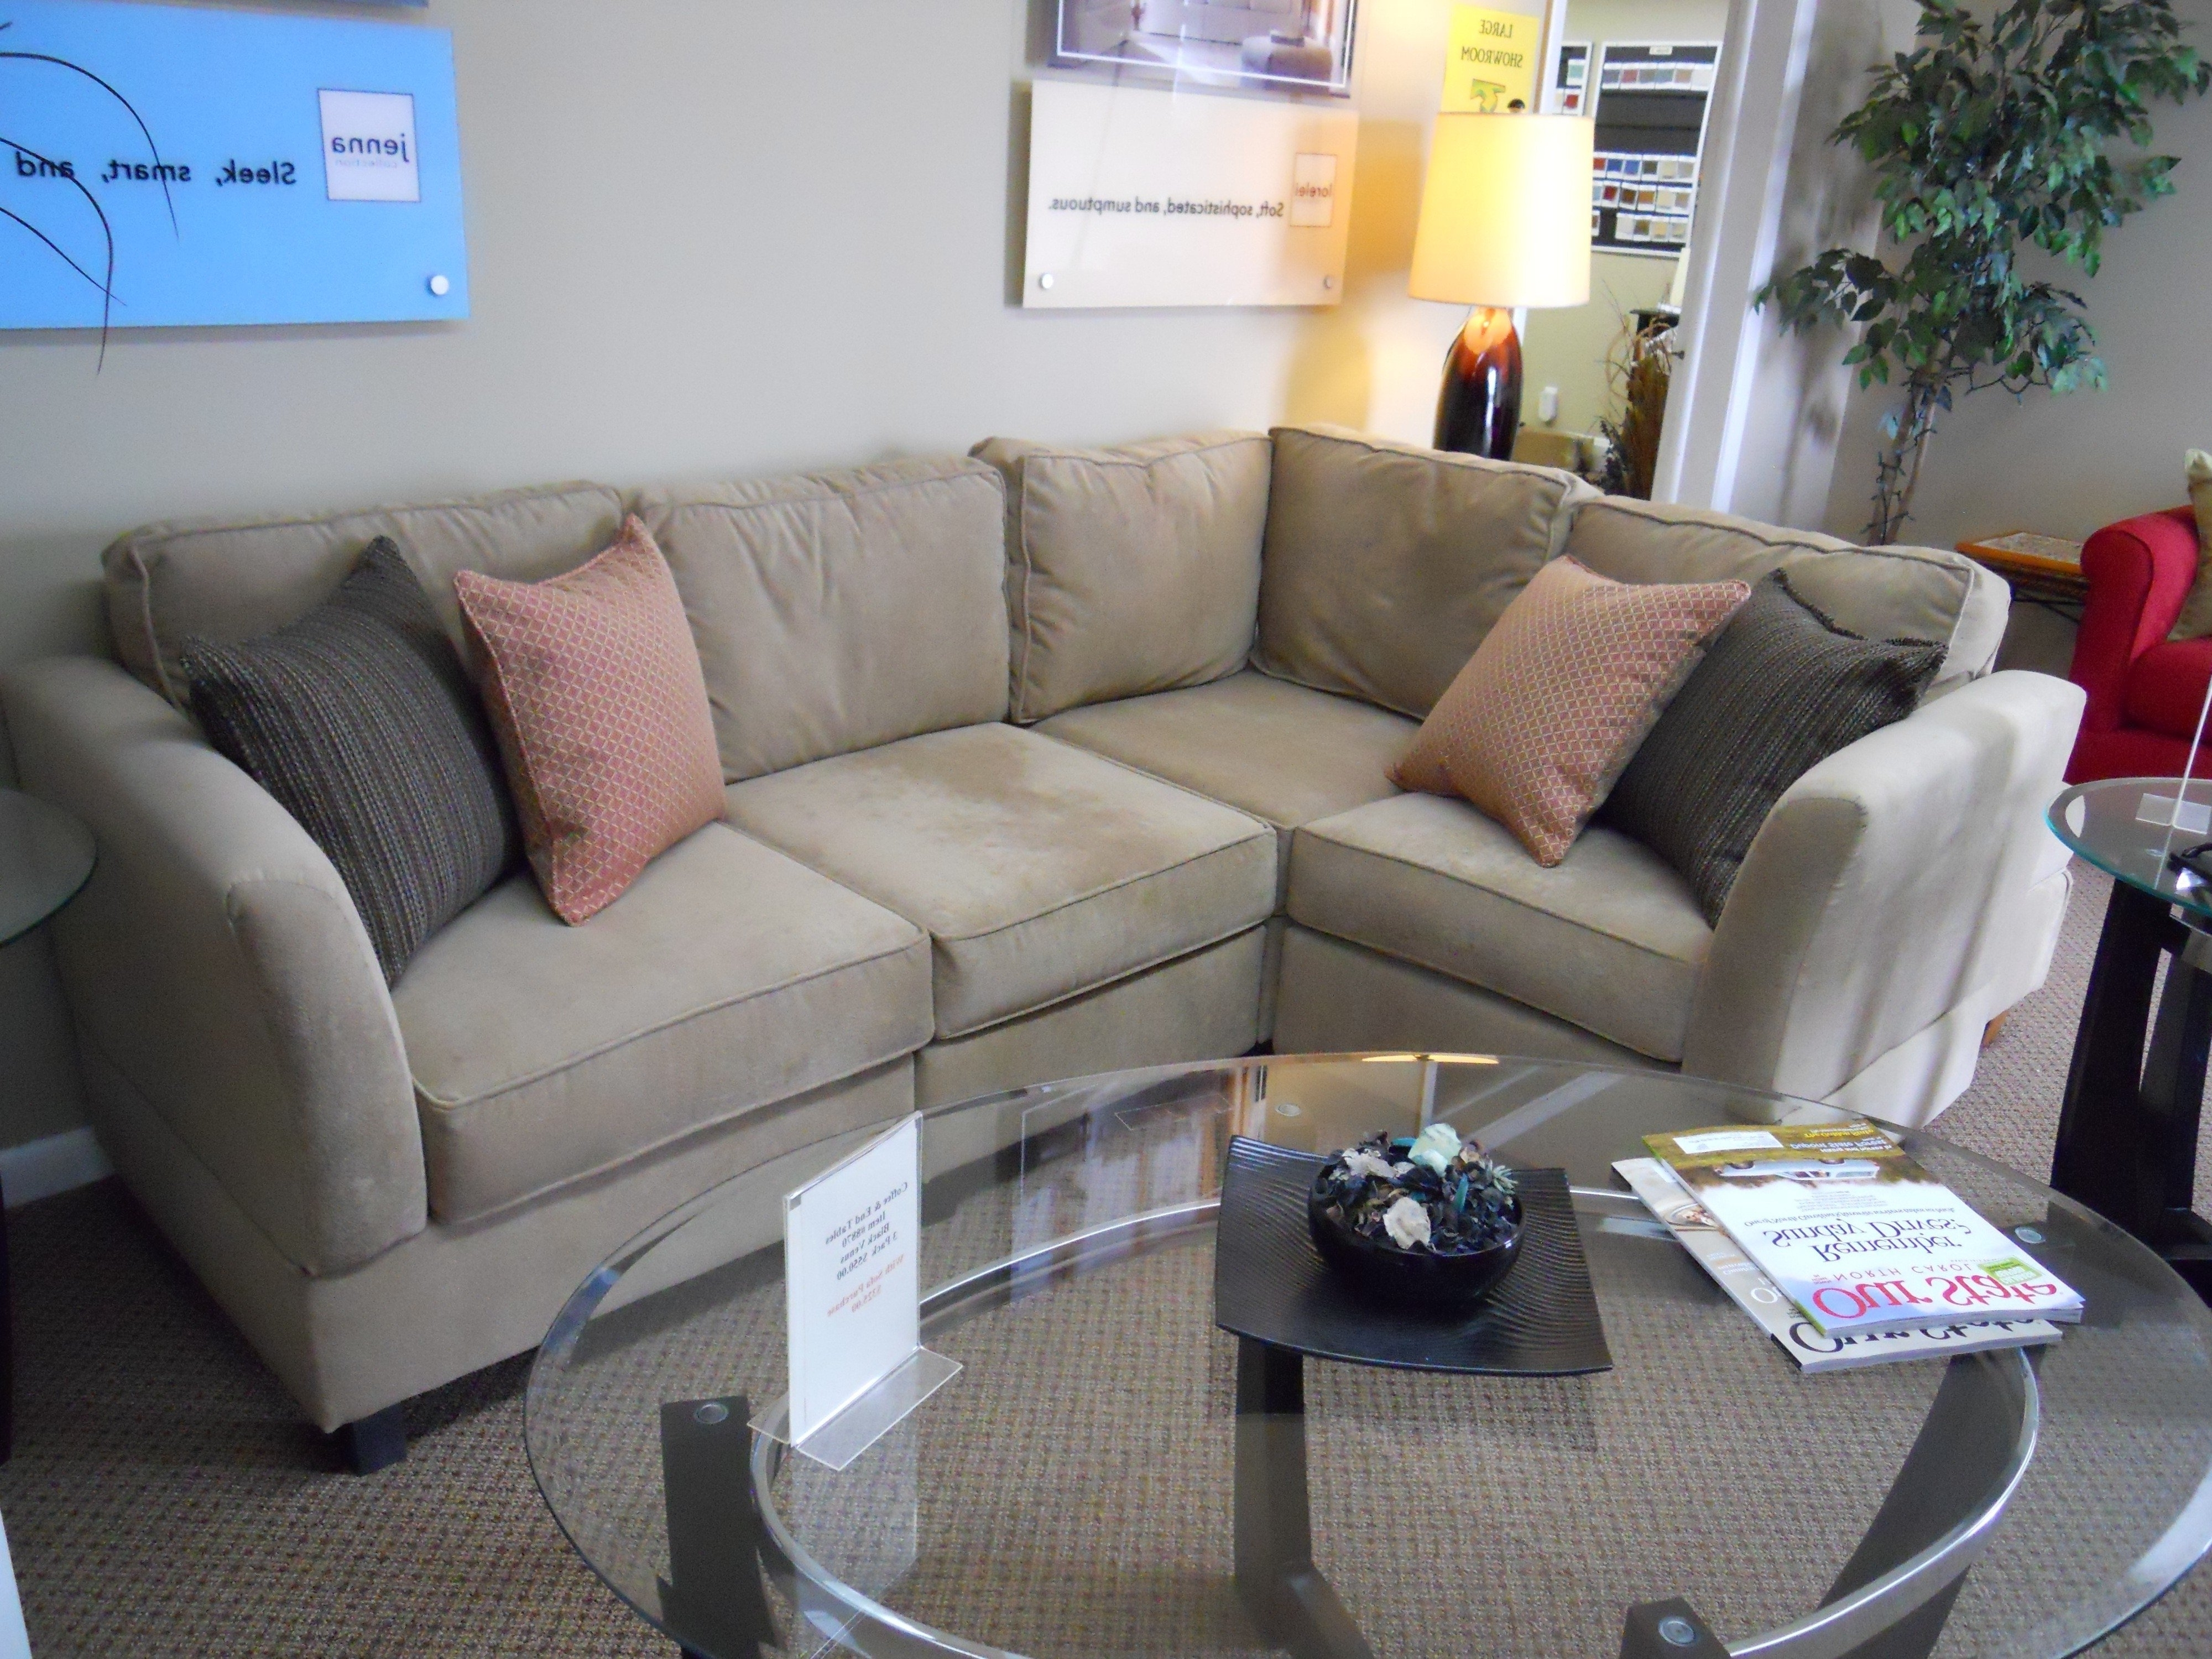 Fashionable Reclining Sectional Sofas For Small Spaces W Script With Small For Small Sectional Sofas (View 5 of 20)